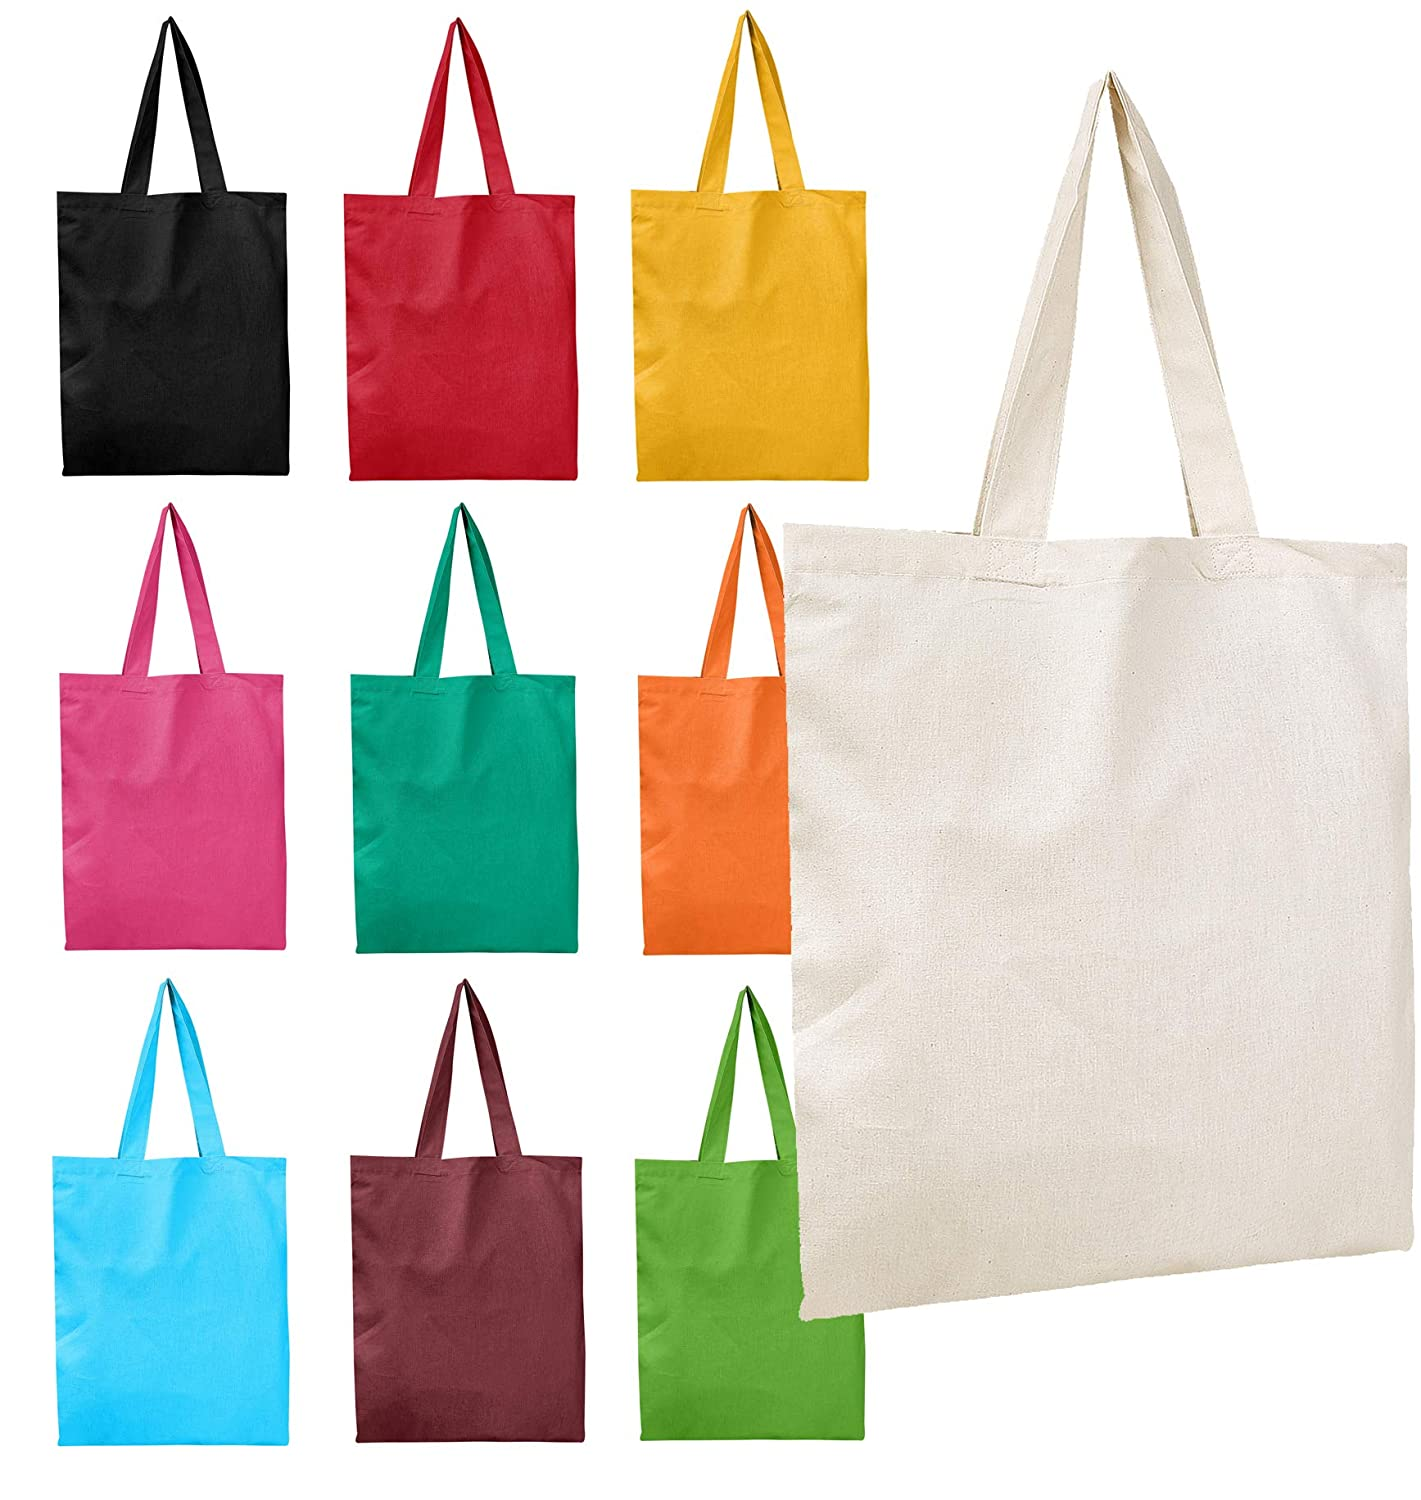 2 DOZEN (24-PACK) BagzDepot 100% Cotton Tote Bags, 6oz  Fabric Flat Bottom  Wholesale Plain Tote Bags, Reusable Grocery Bags, Arts and Craft Bags